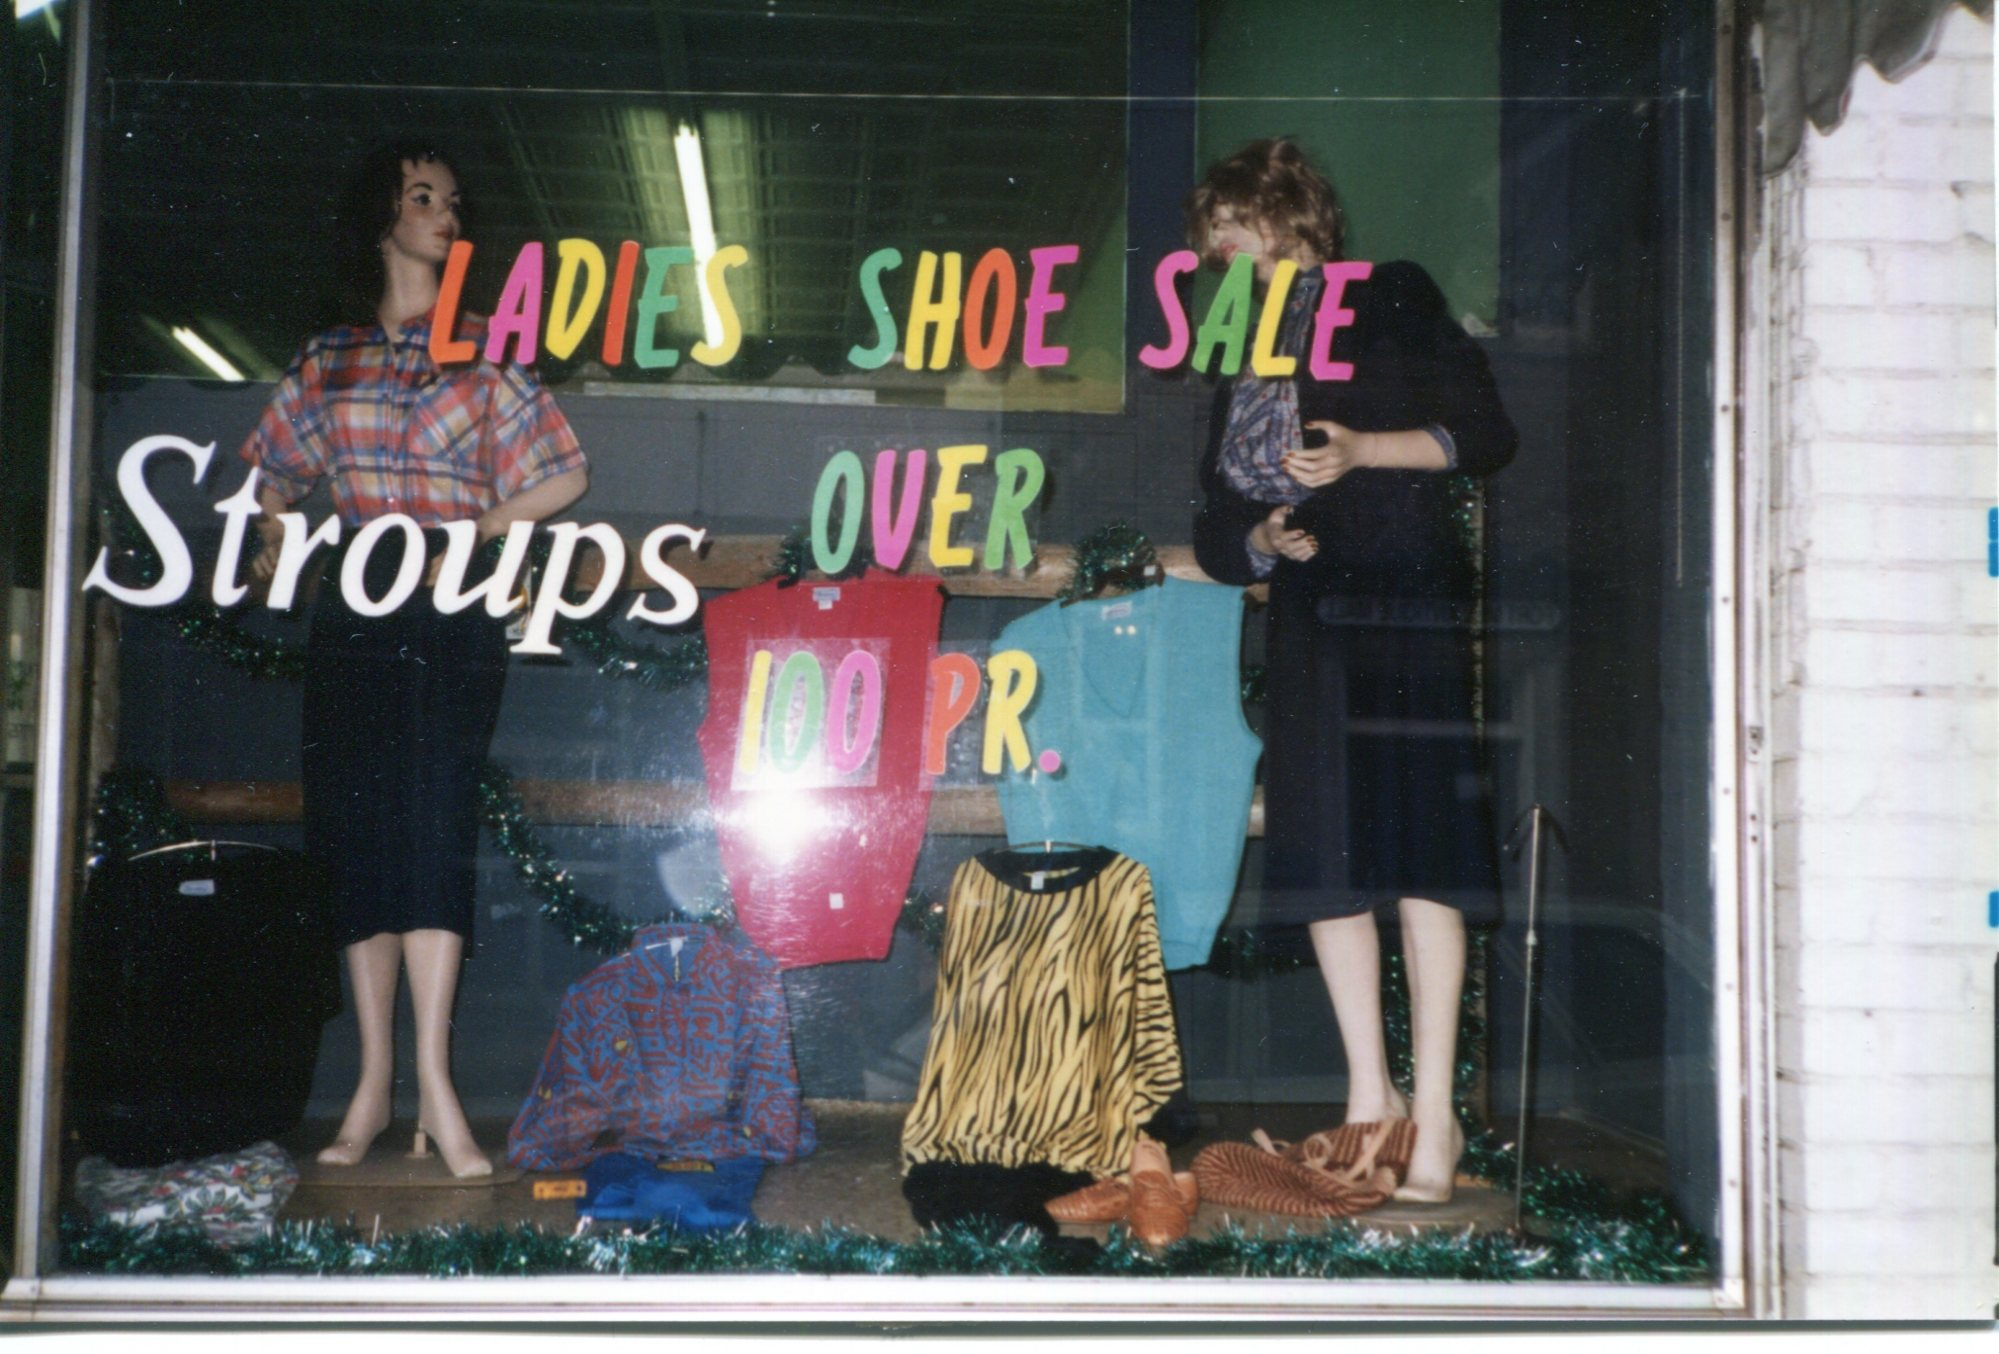 Stroup's storefront